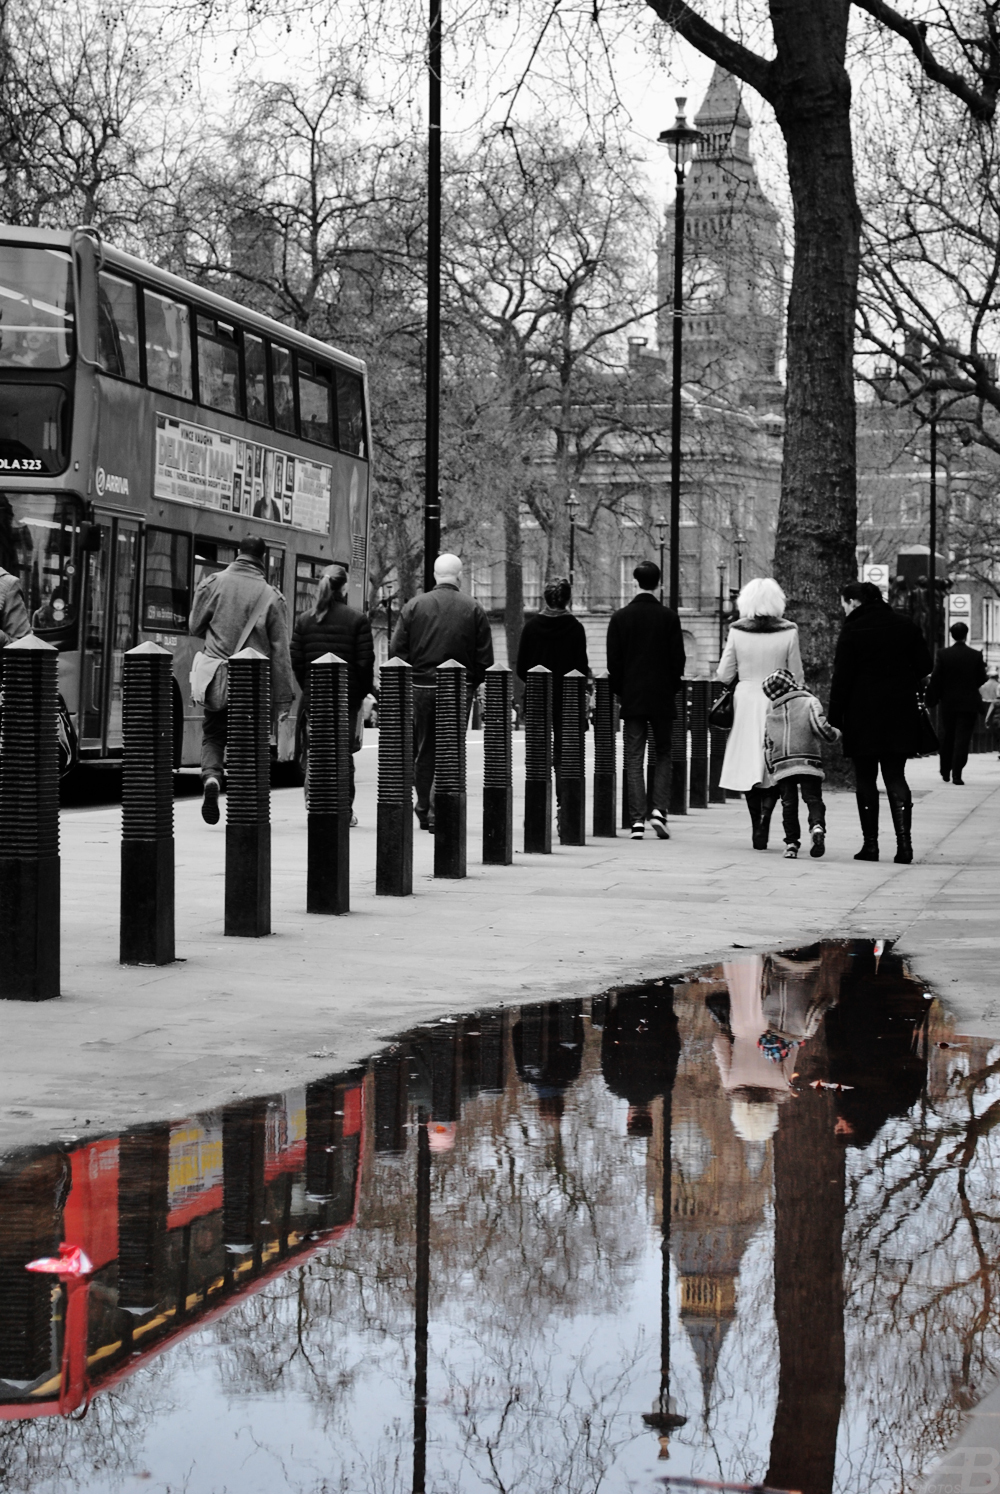 Reflection in a puddle, London